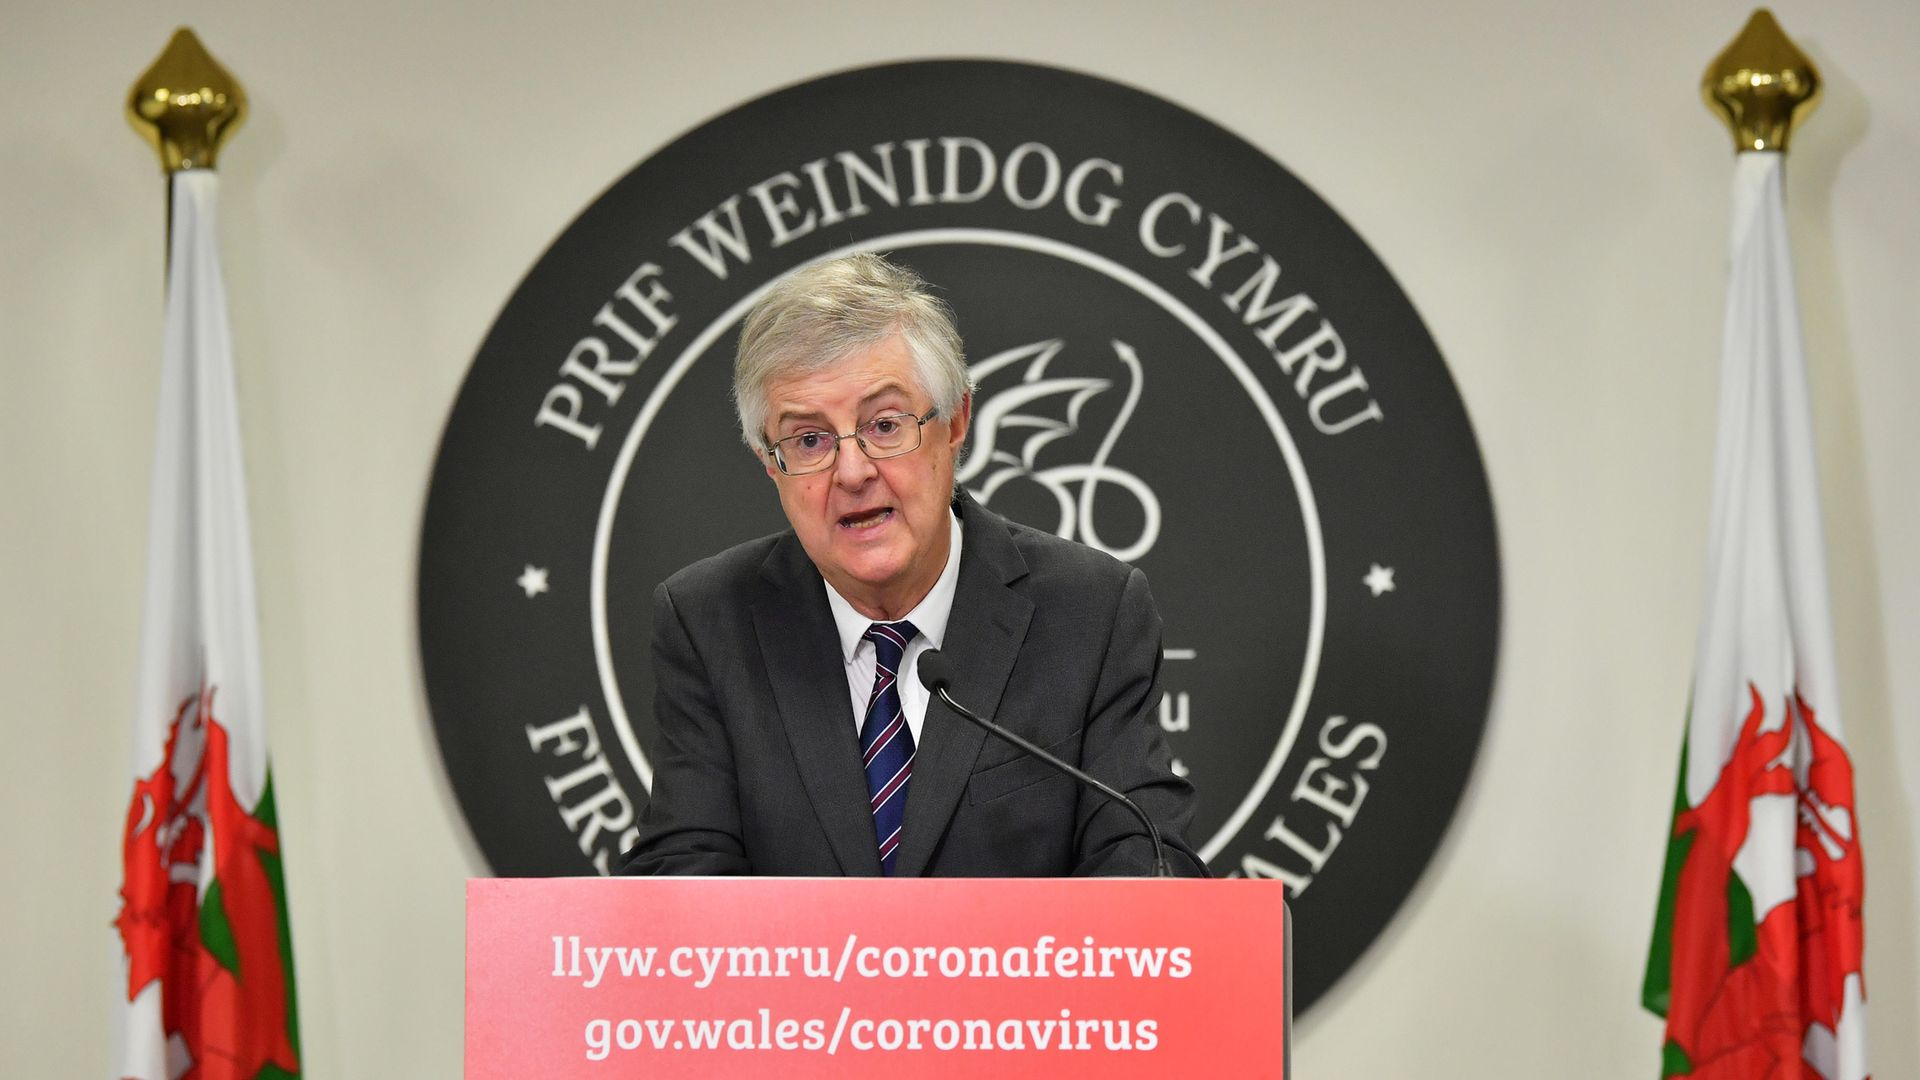 First minister Mark Drakeford speaking at a Covid press conference in Cardiff, Wales - Credit: PA